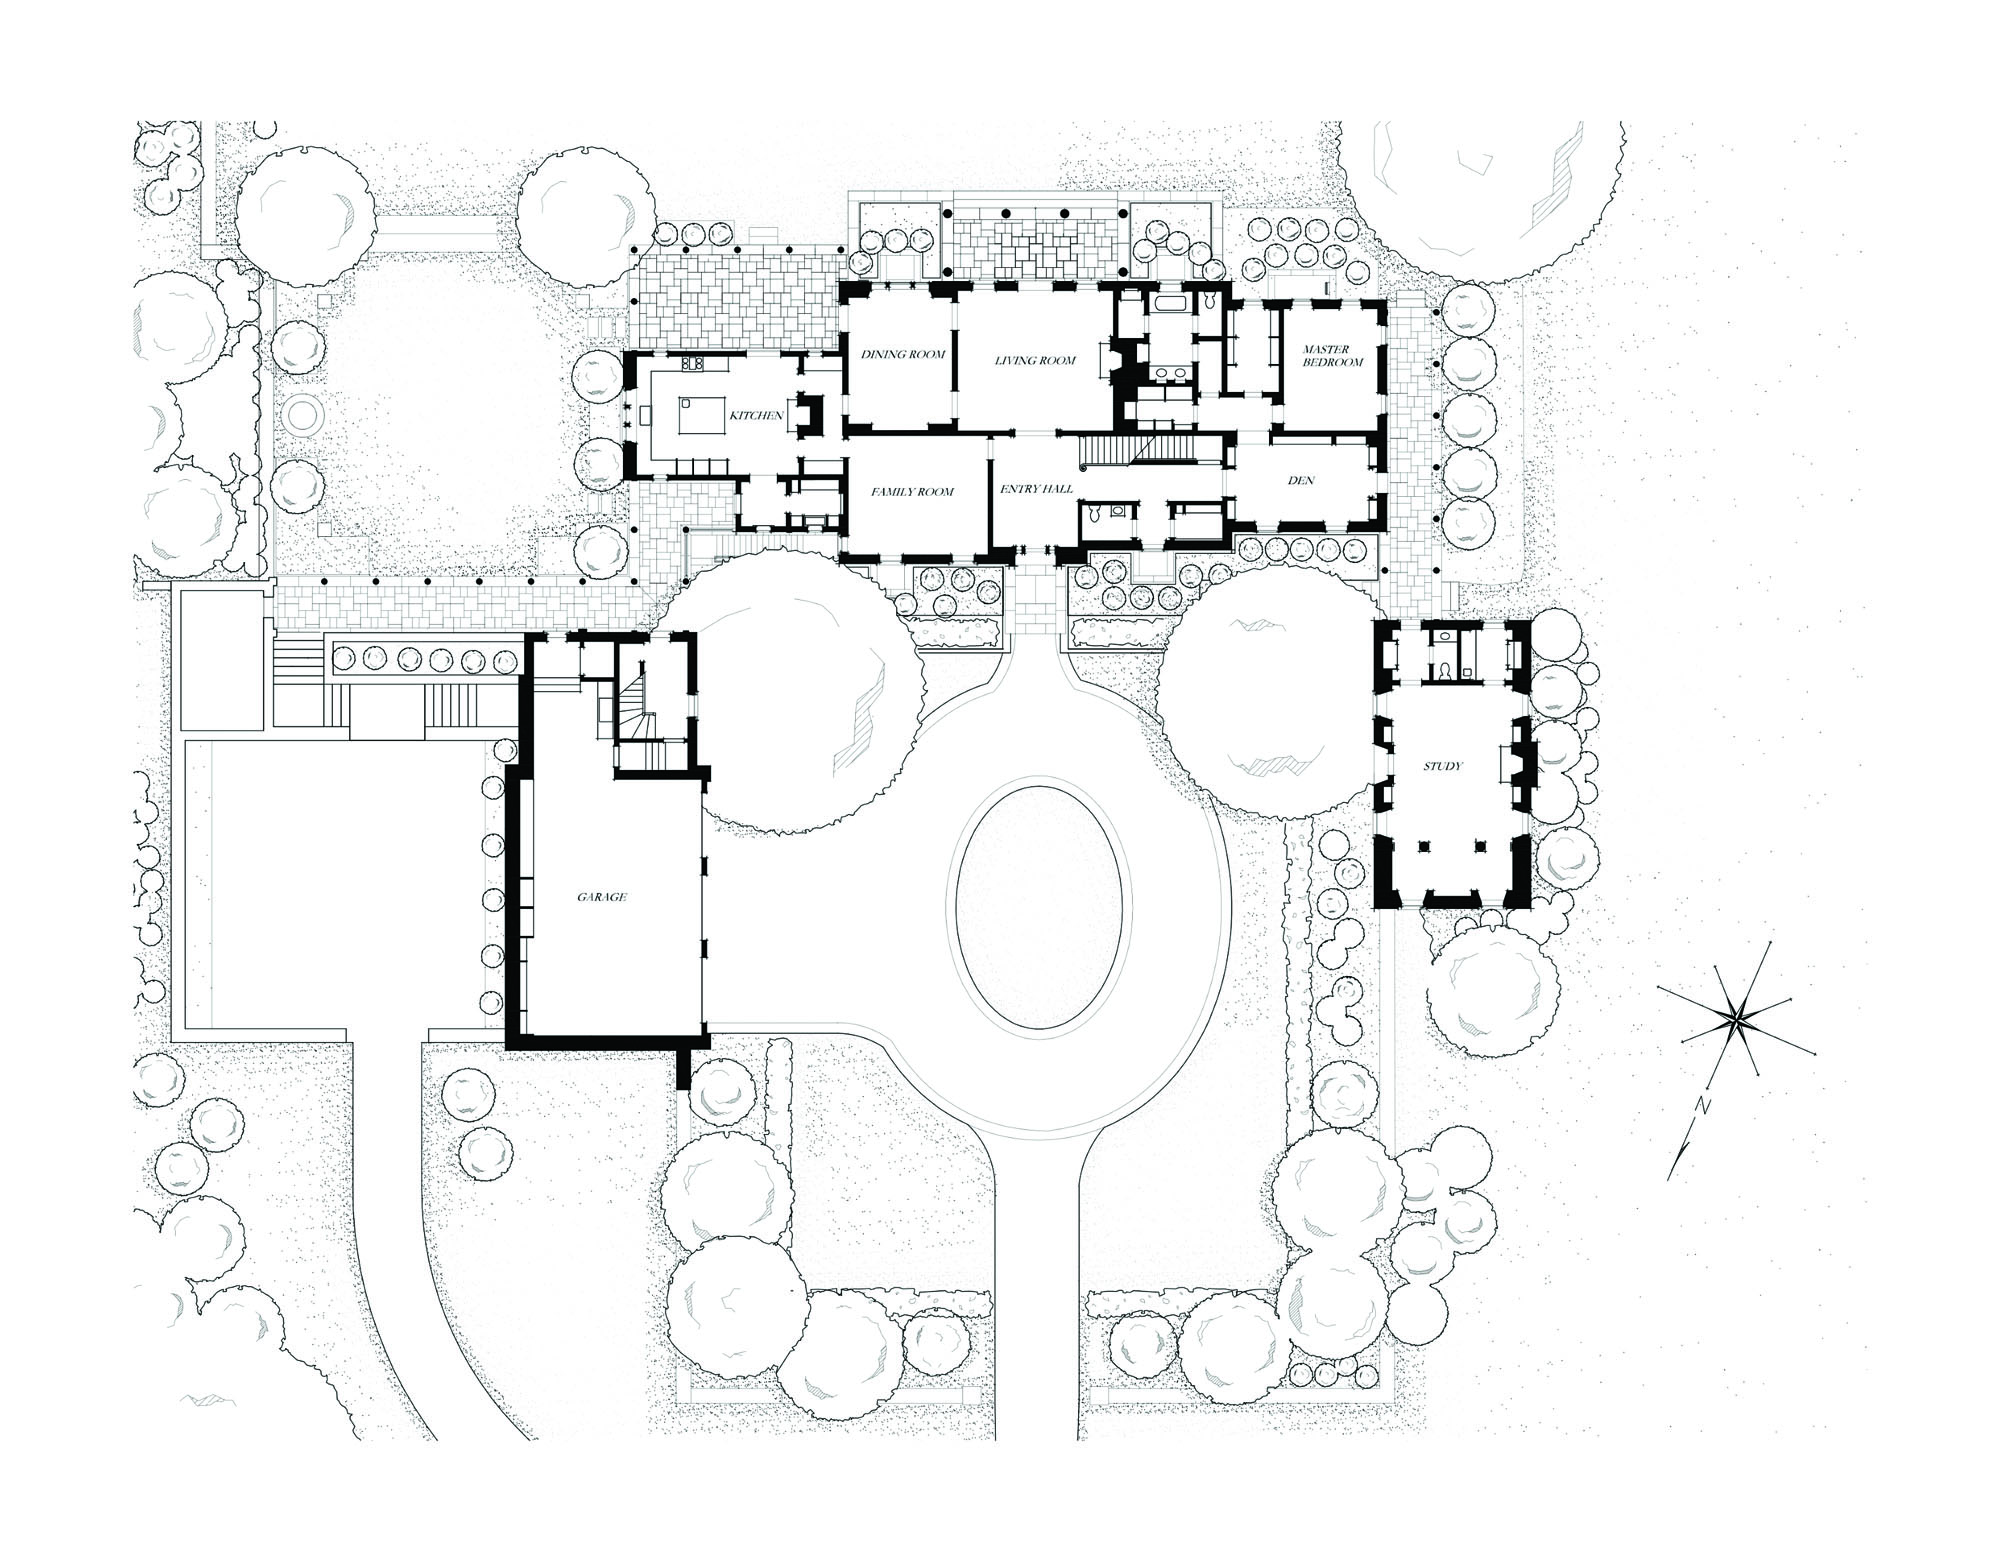 16 first floor plan_gn